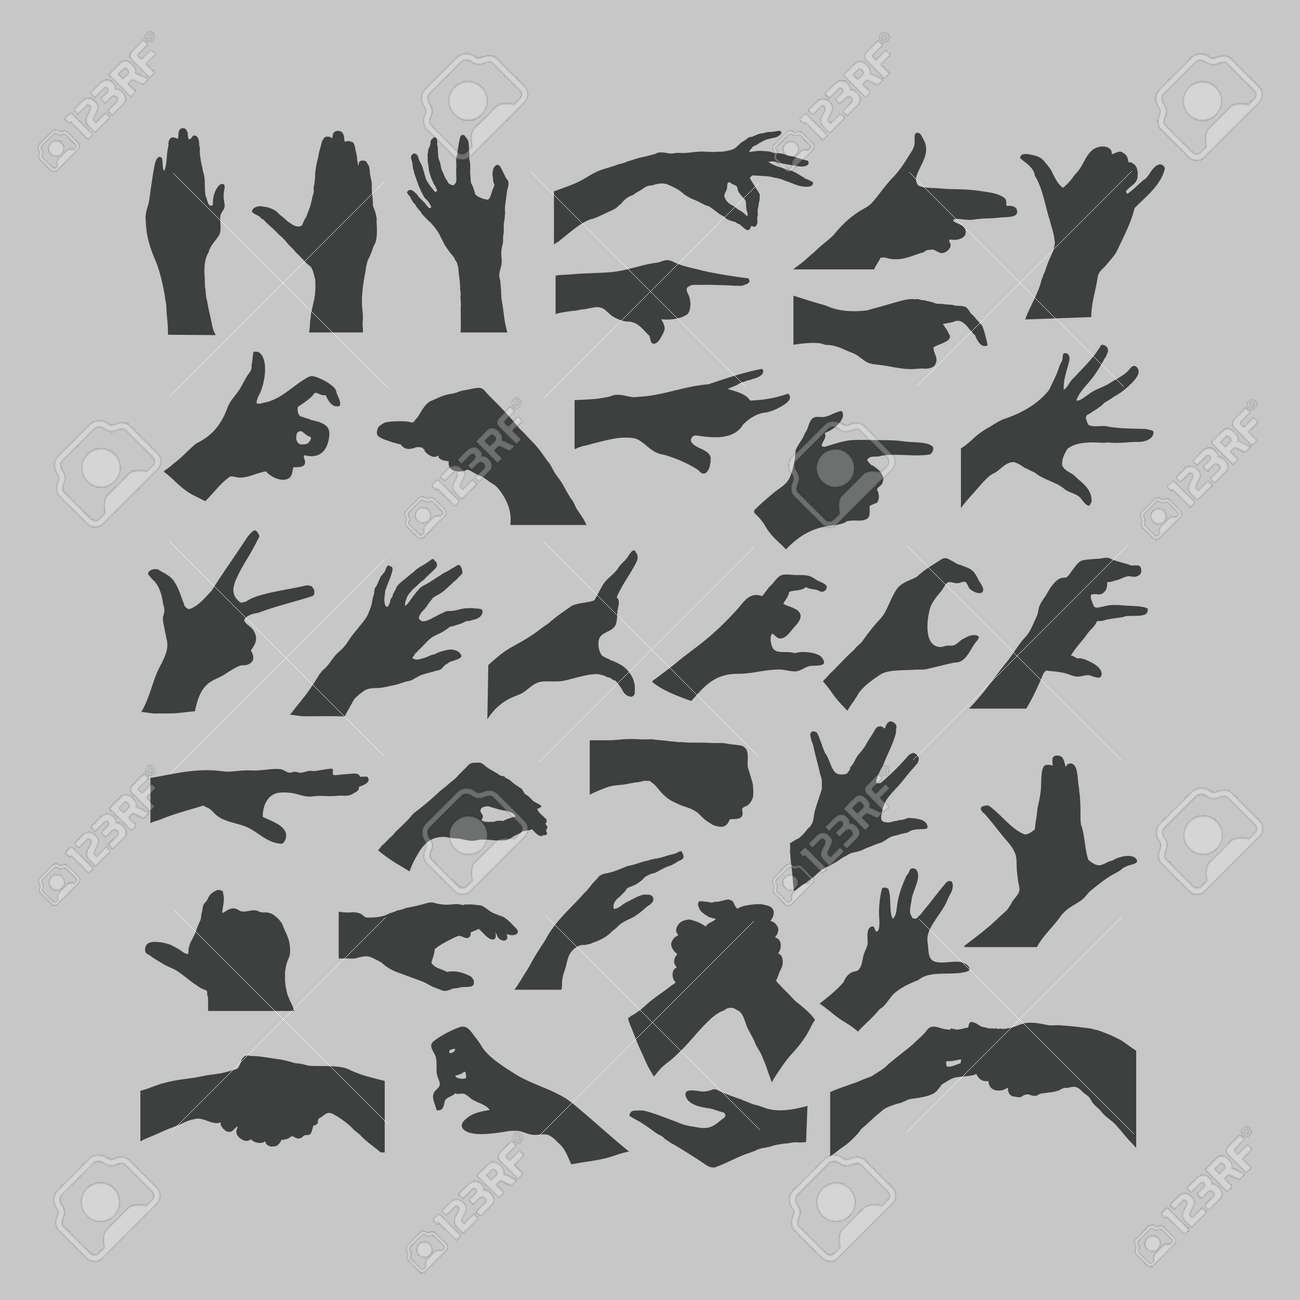 Hands icons Stock Vector - 20960993